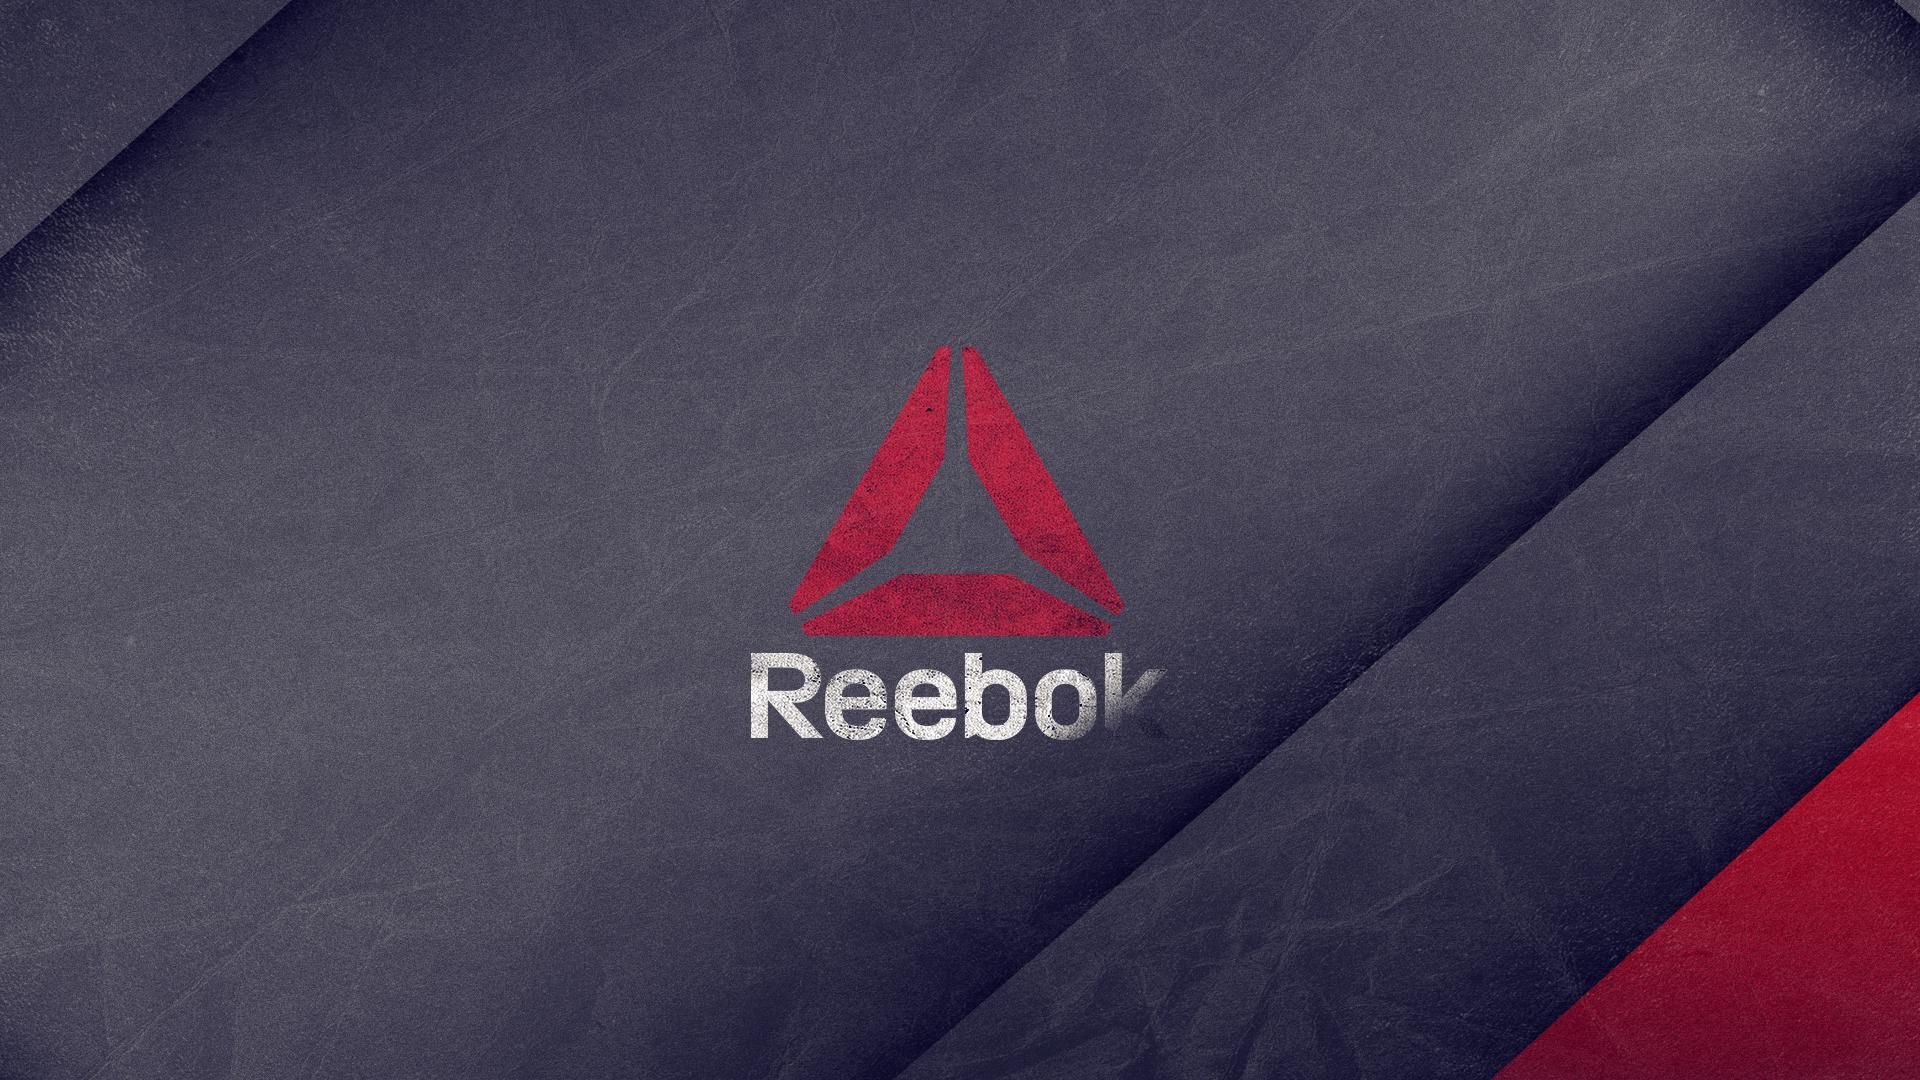 1920x1080 Reebok Wallpaper 10 - 1920 X 1080 | stmed.net